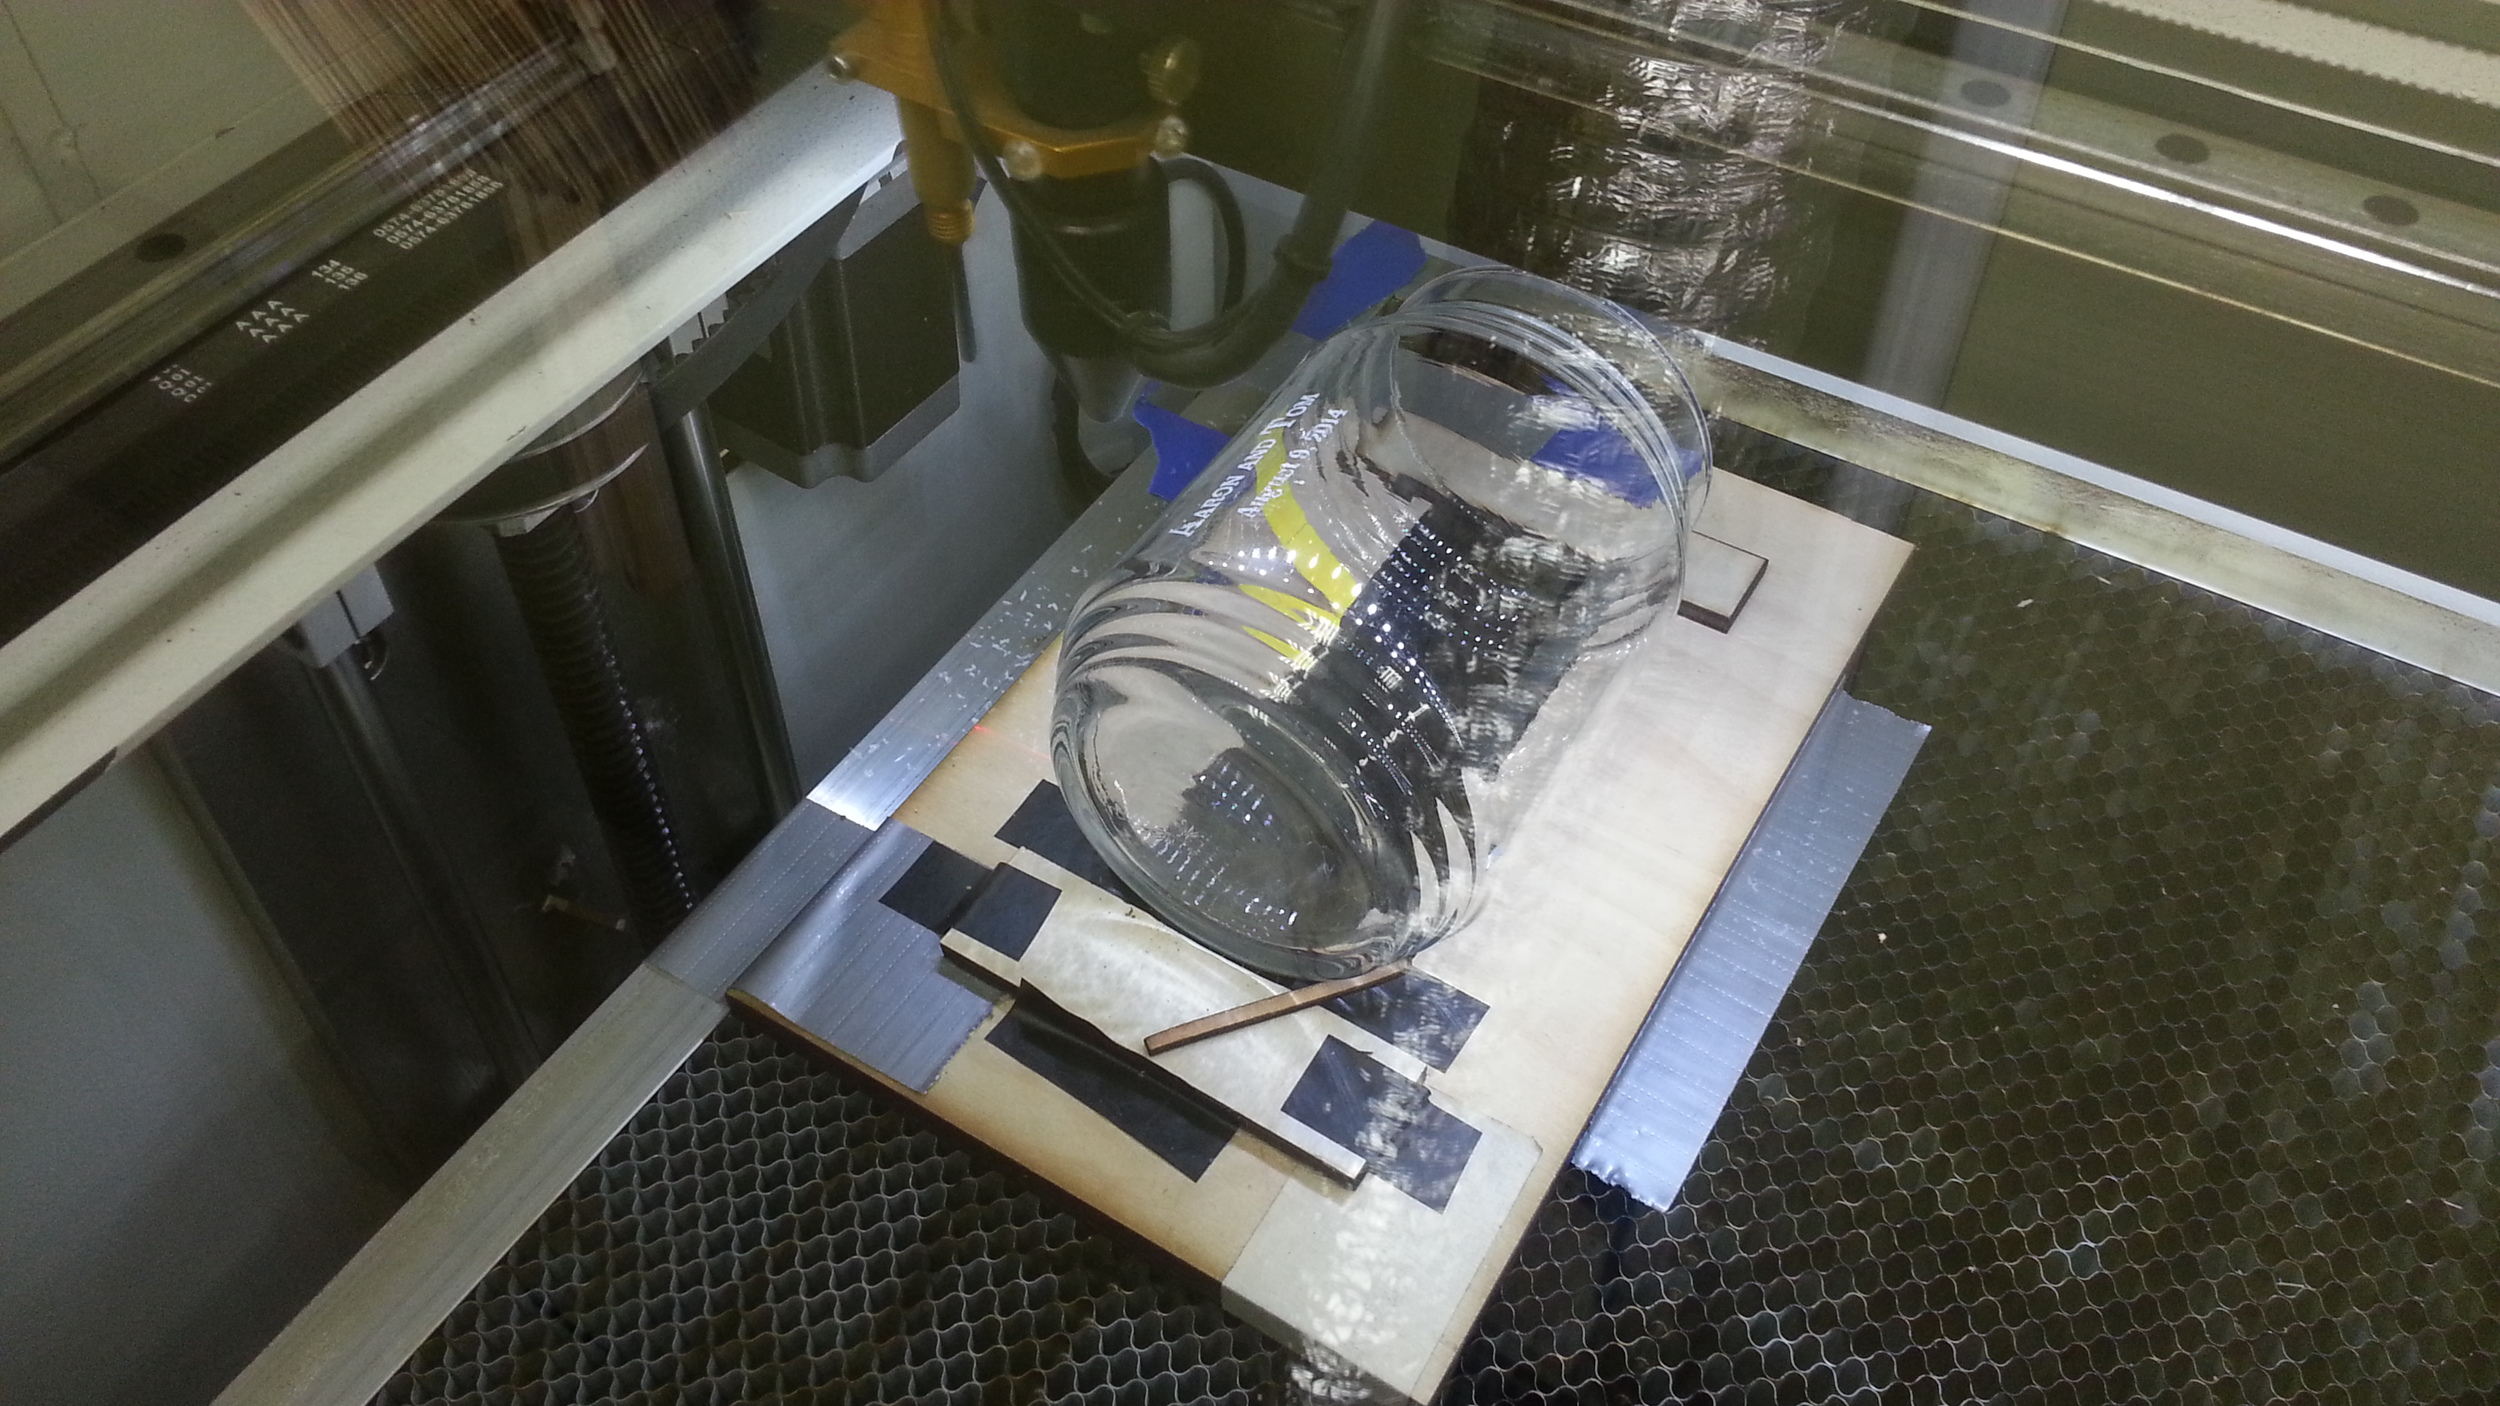 Process for using a laser cutter to etch glass jars for a wedding at Edgewater Workbench